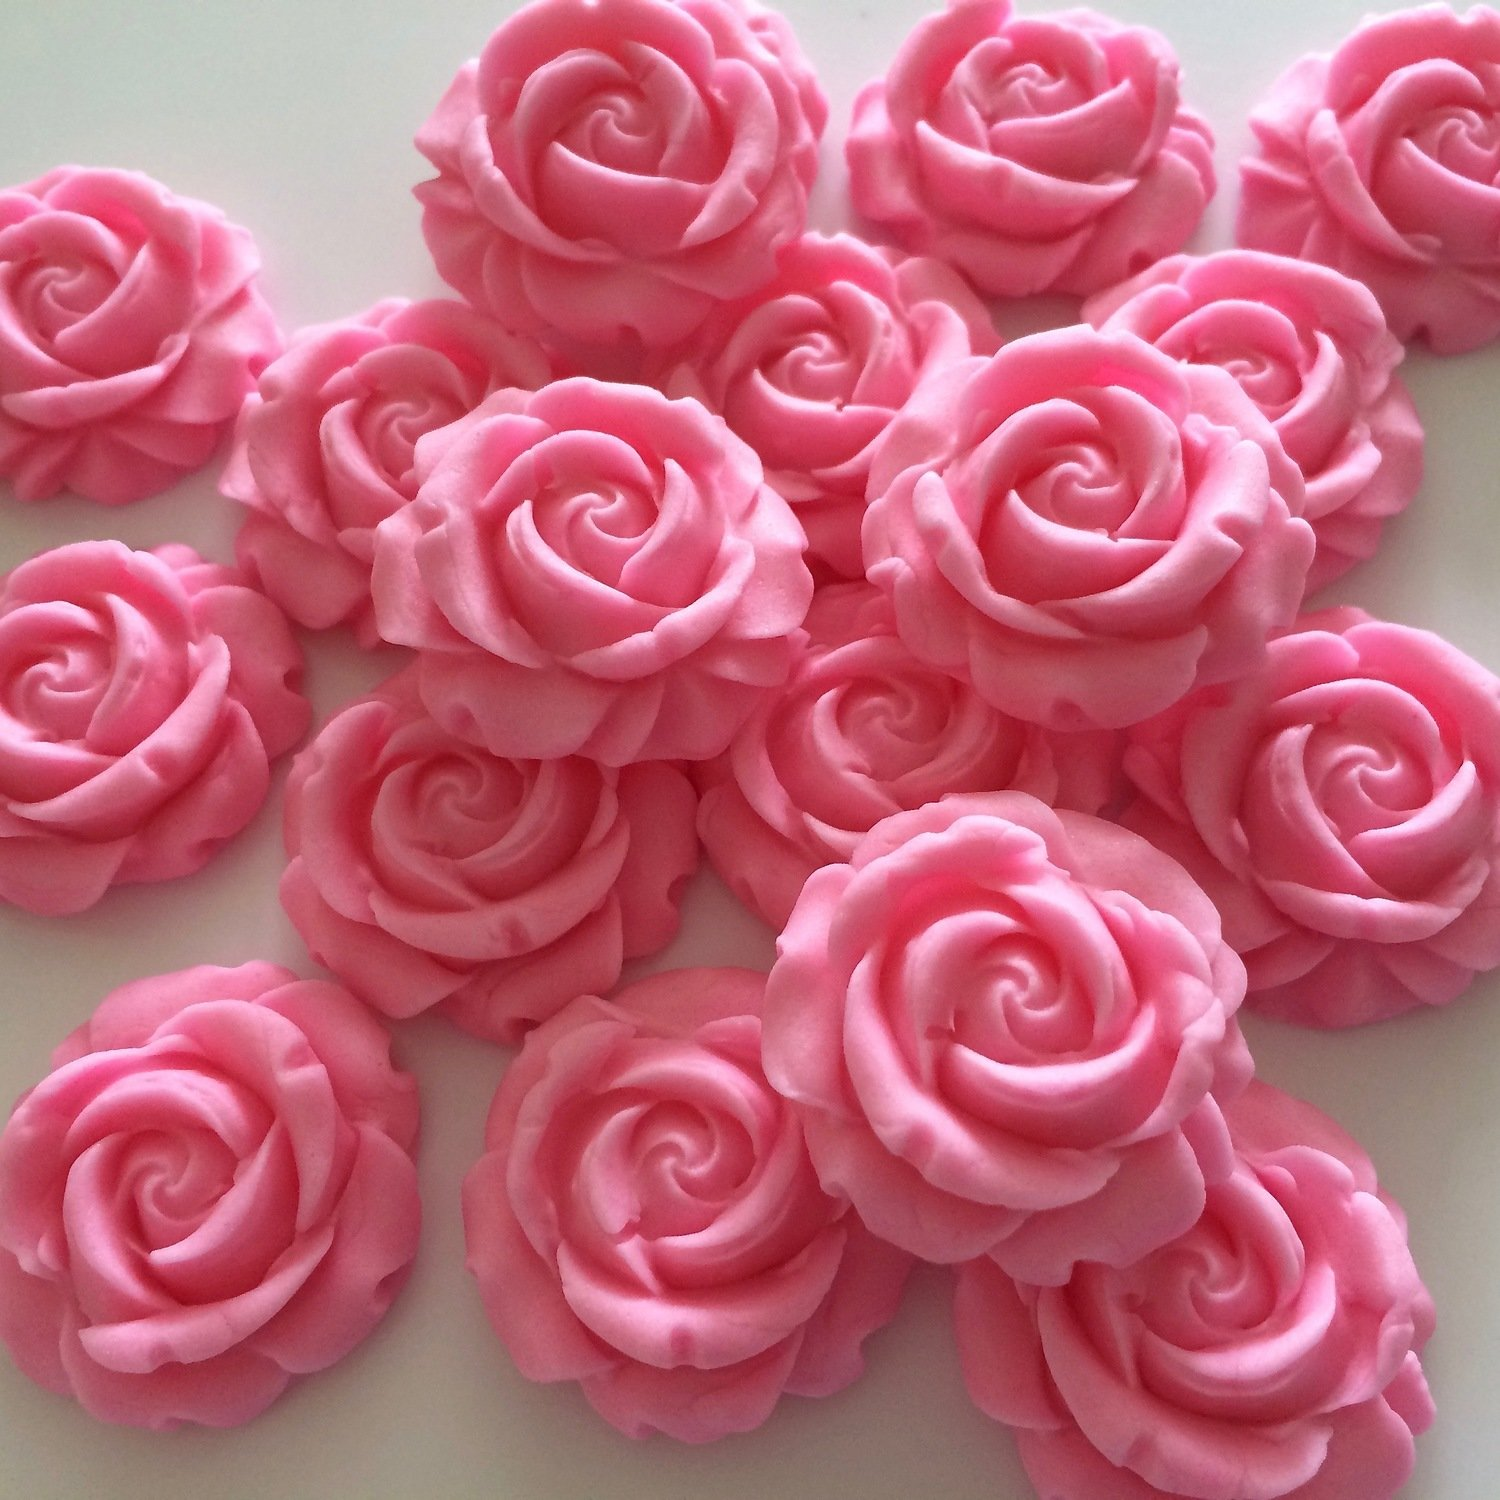 Candy Pink Sugar Roses